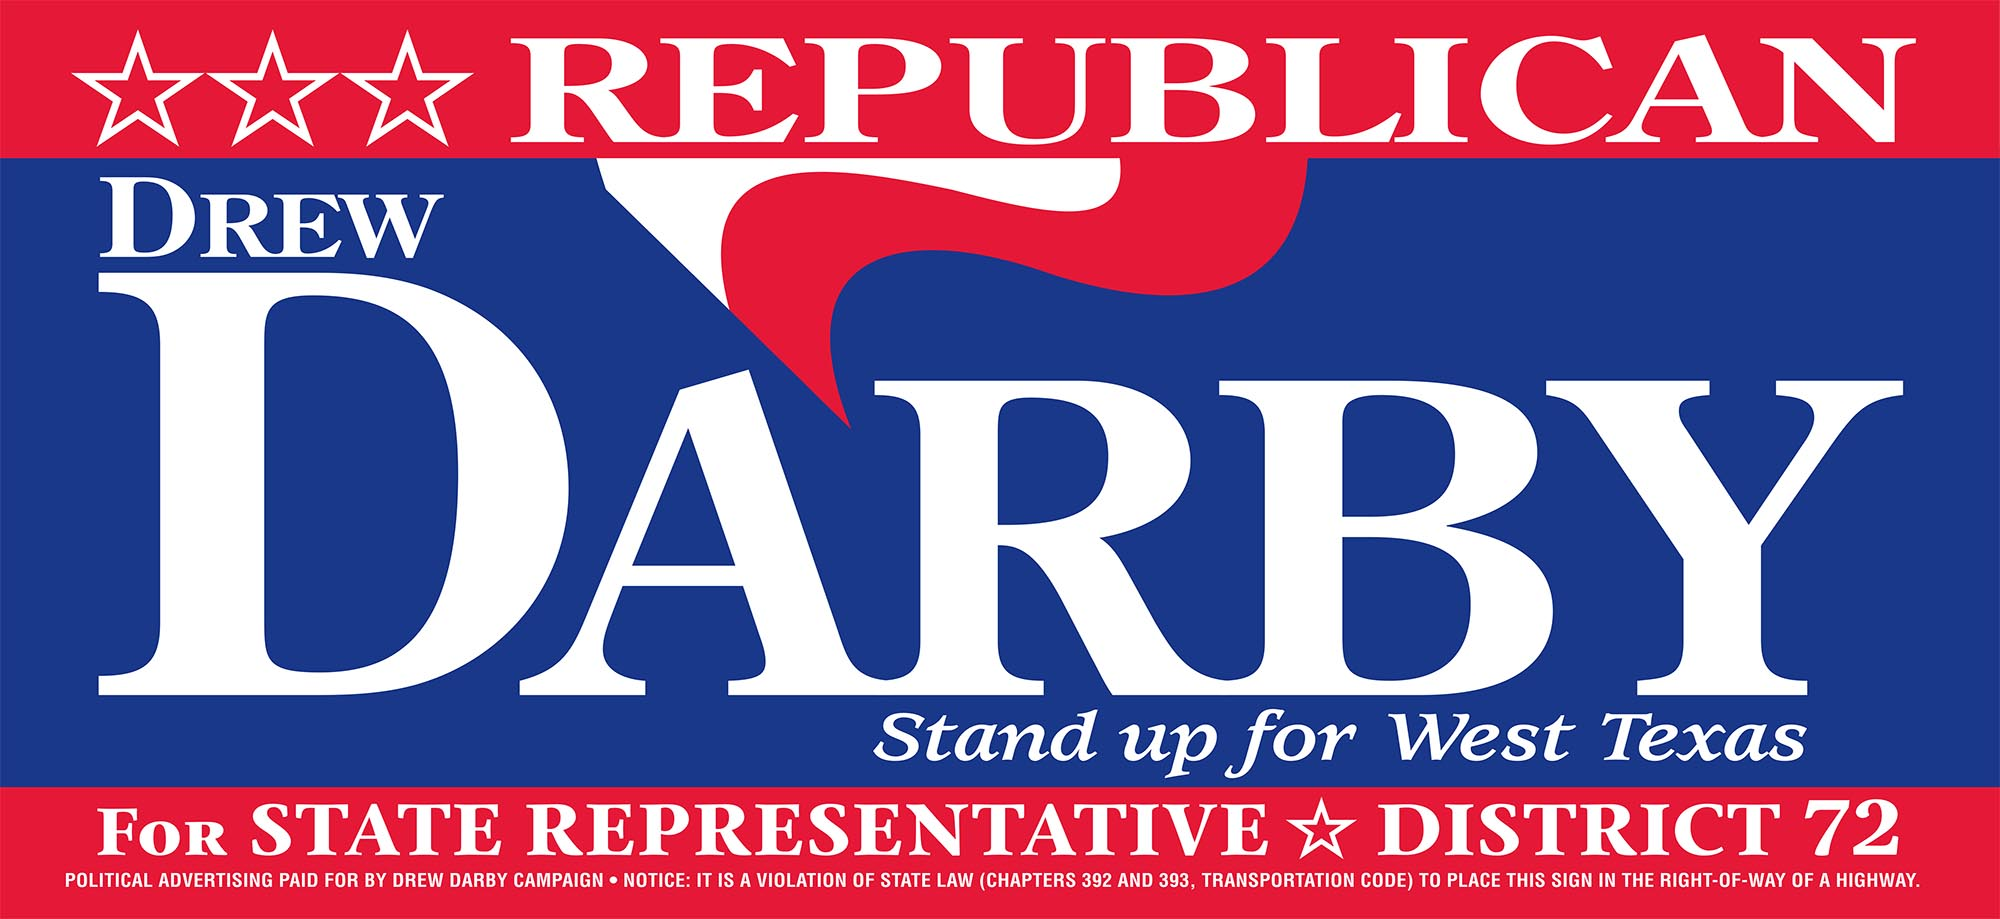 Drew Darby Campaign